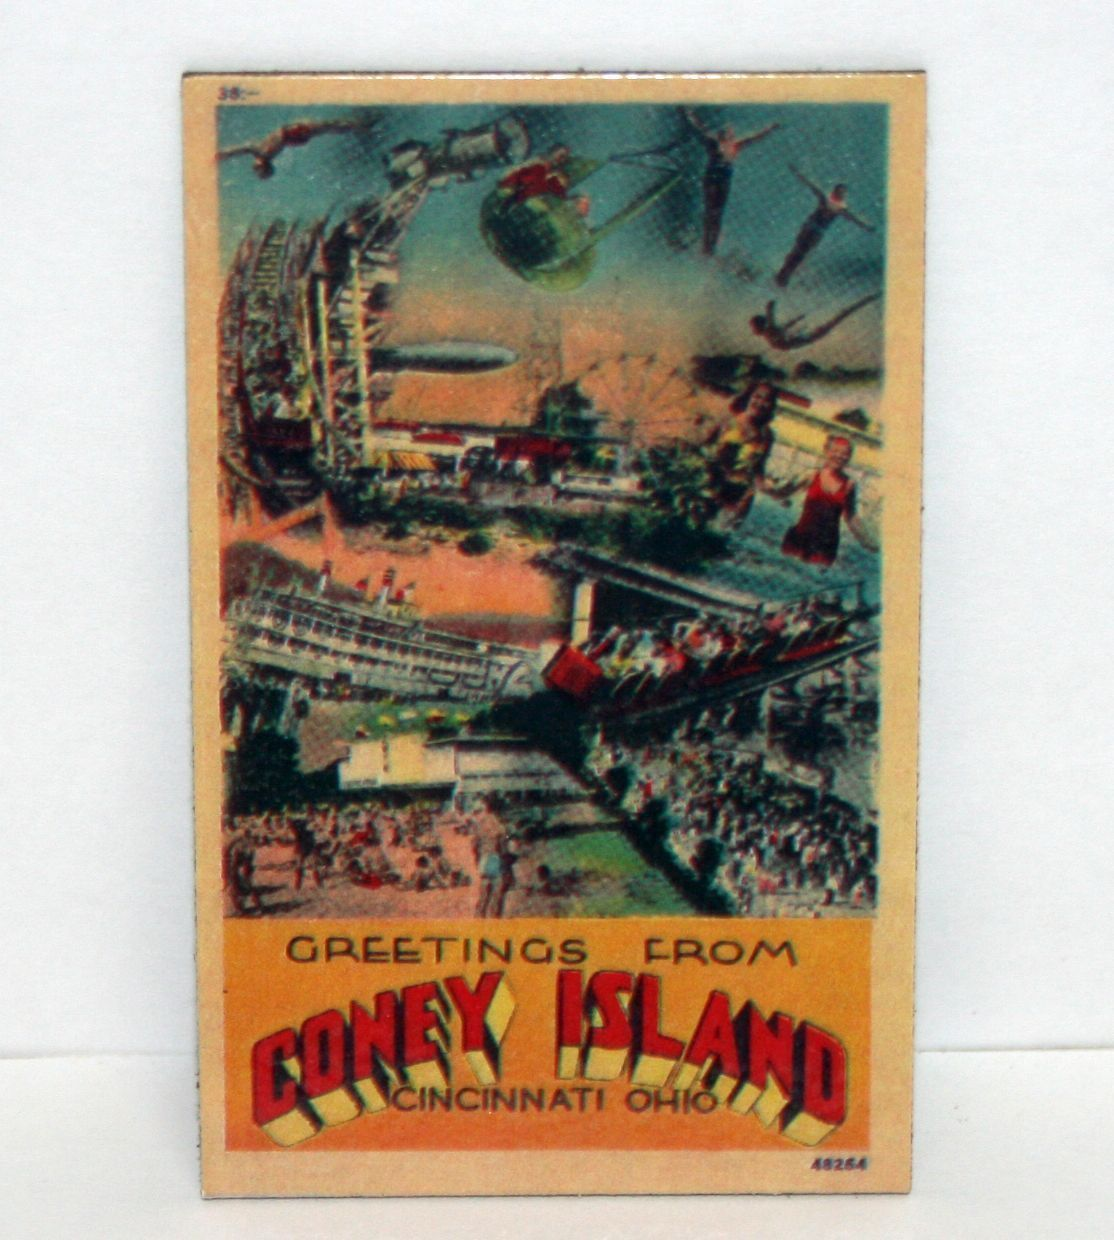 Details about greetings from coney island cincinnati ohio details about greetings from coney island cincinnati ohio refrigerator magnet advertising ad m4hsunfo